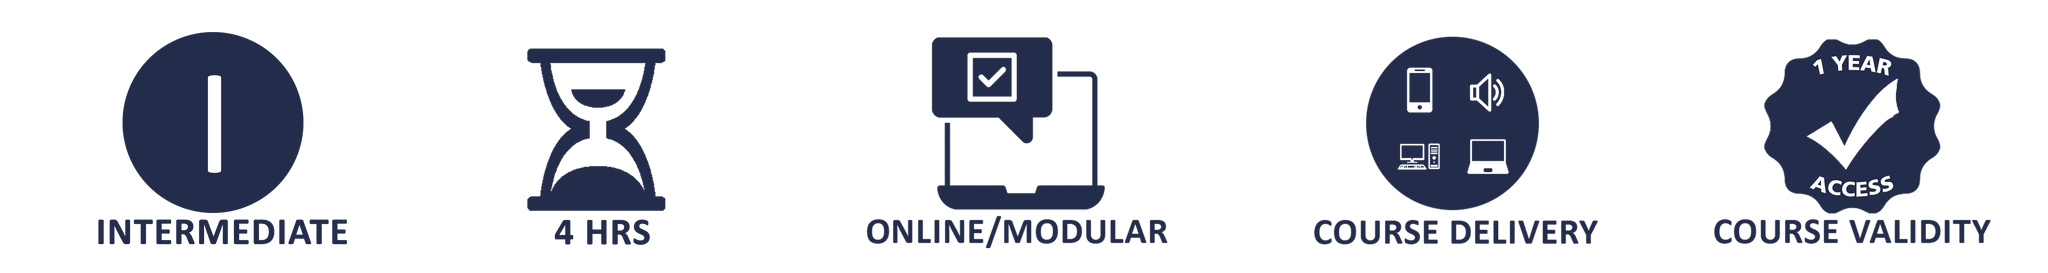 Induction of New Staff - Online CPD Course - The Mandatory Training Group UK -